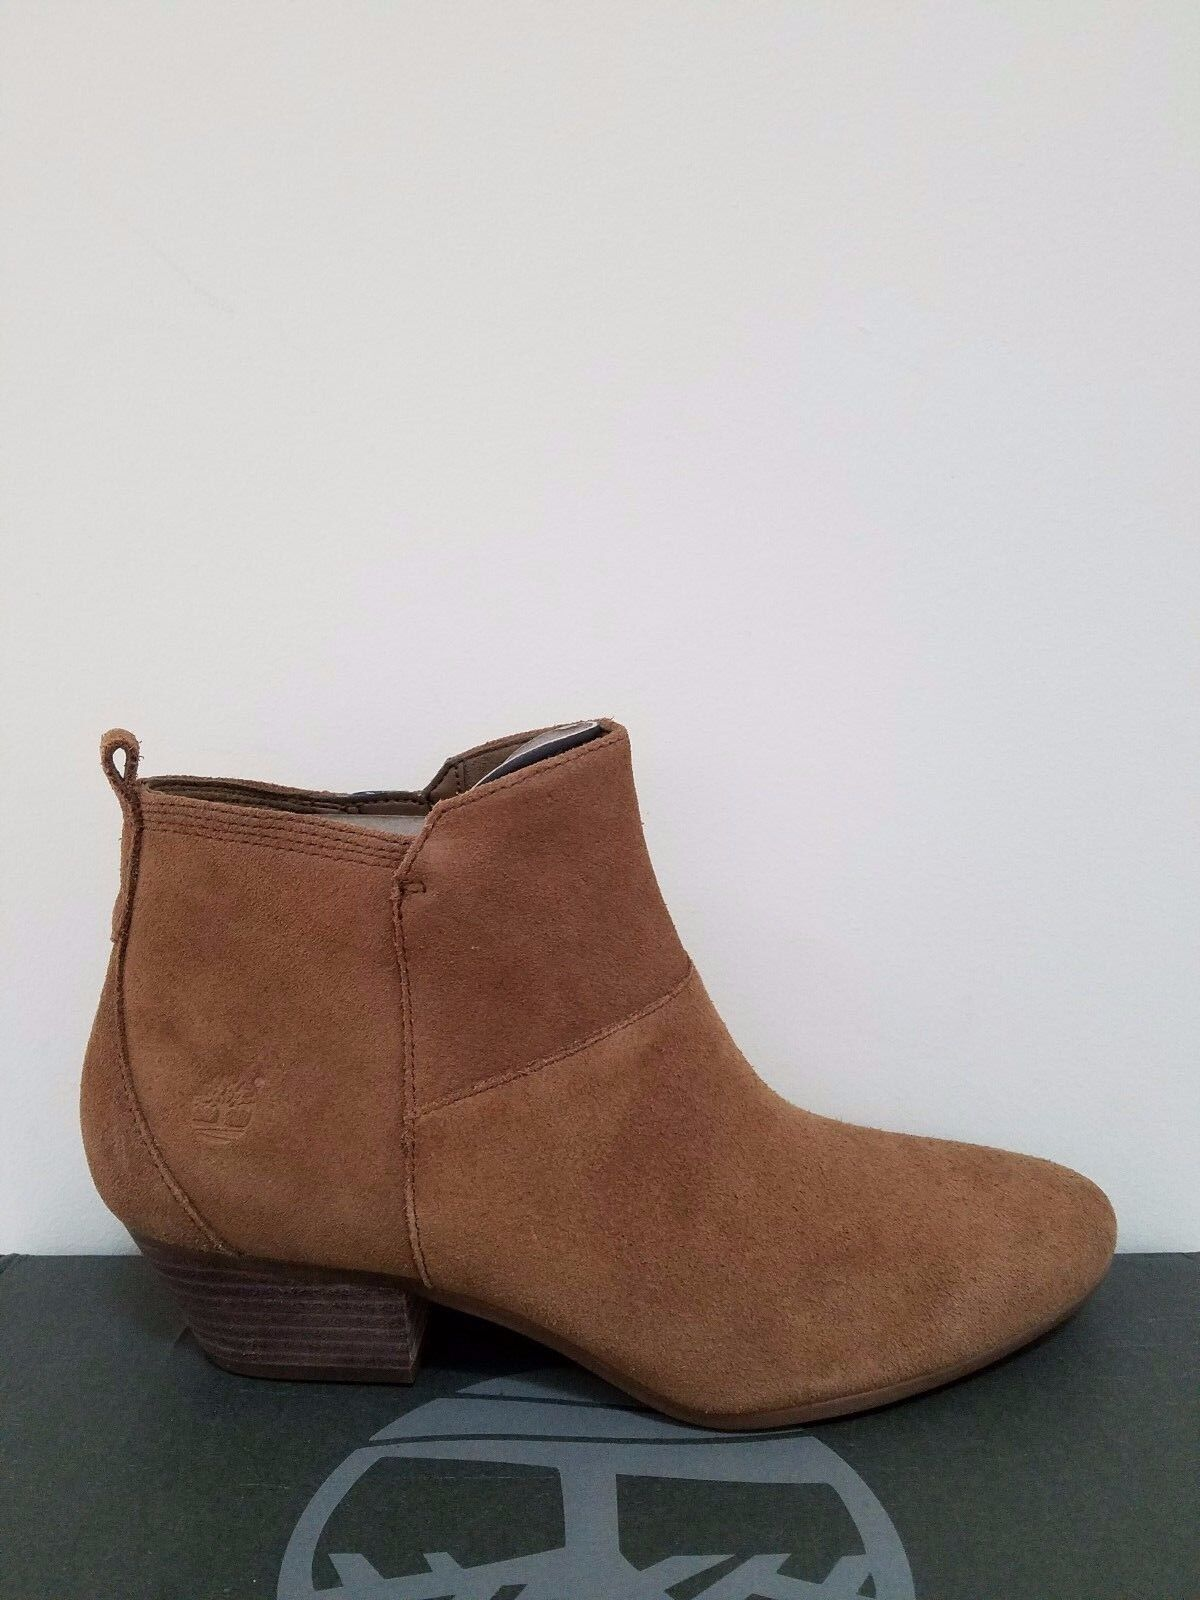 Timberland Women's Carleton side-Zip Suede Ankle Boots NIB